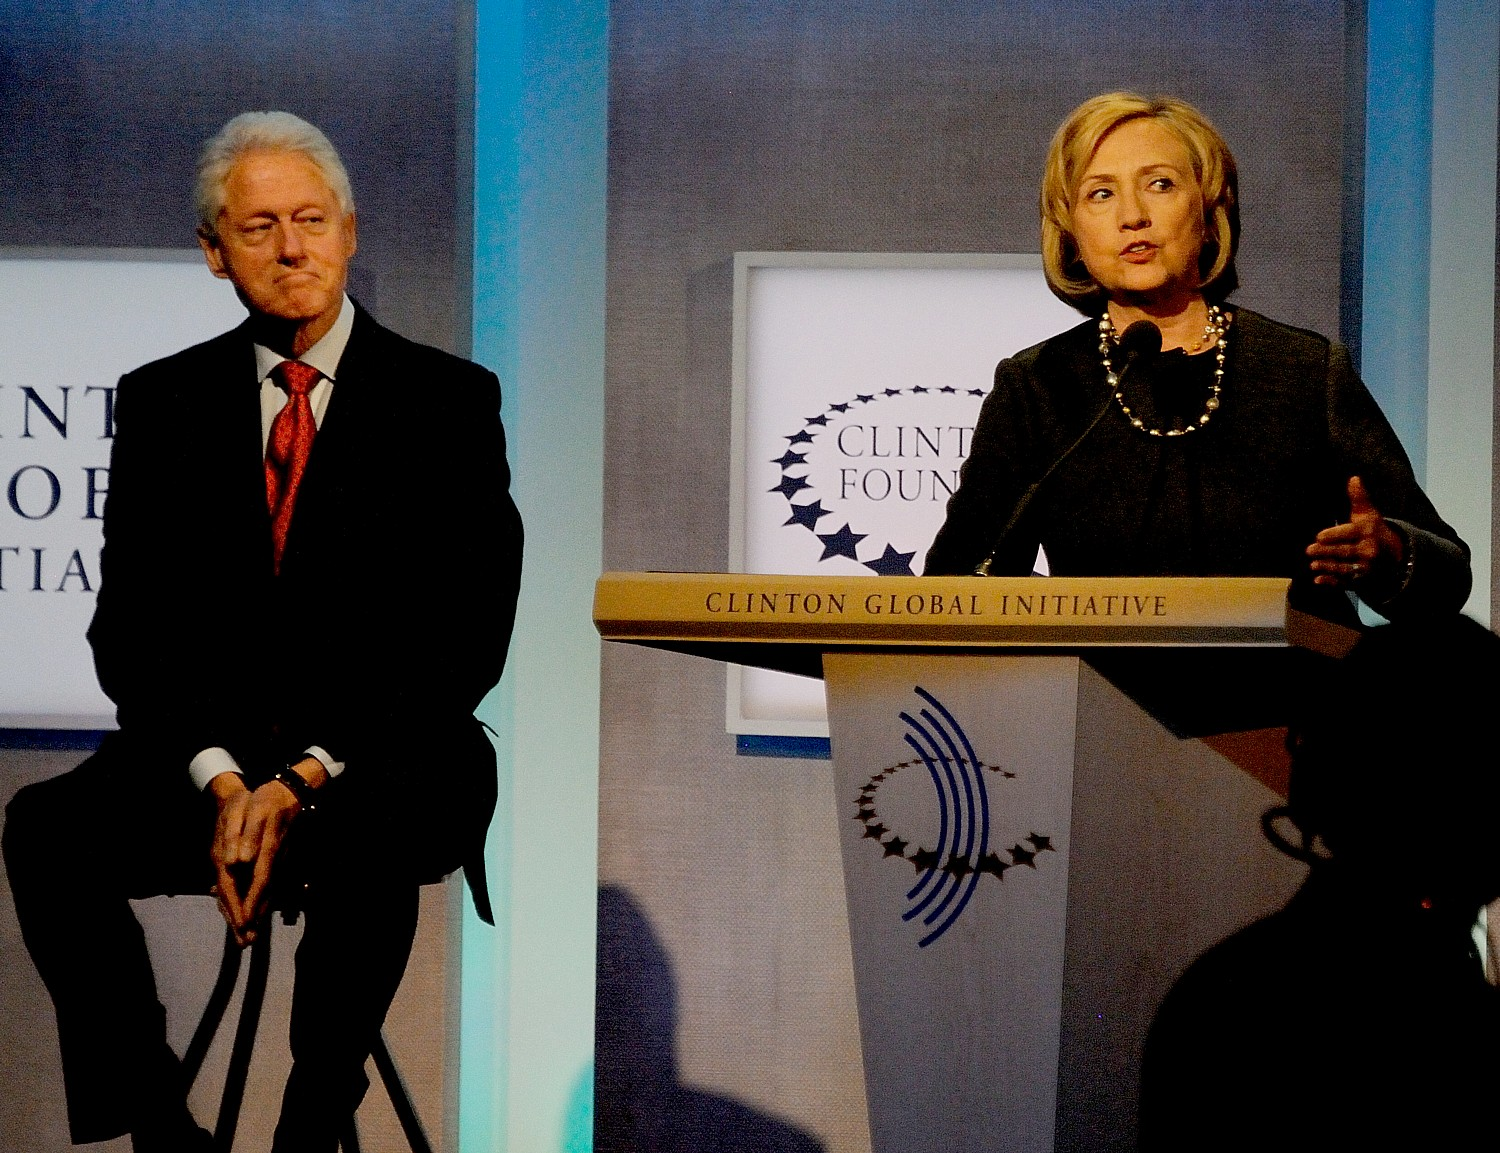 Hillary Clinton addressing the Clinton Global Initiative in 2014, as President Bill Clinton looks on © 2016 Karen Rubin/news-photos-features.com